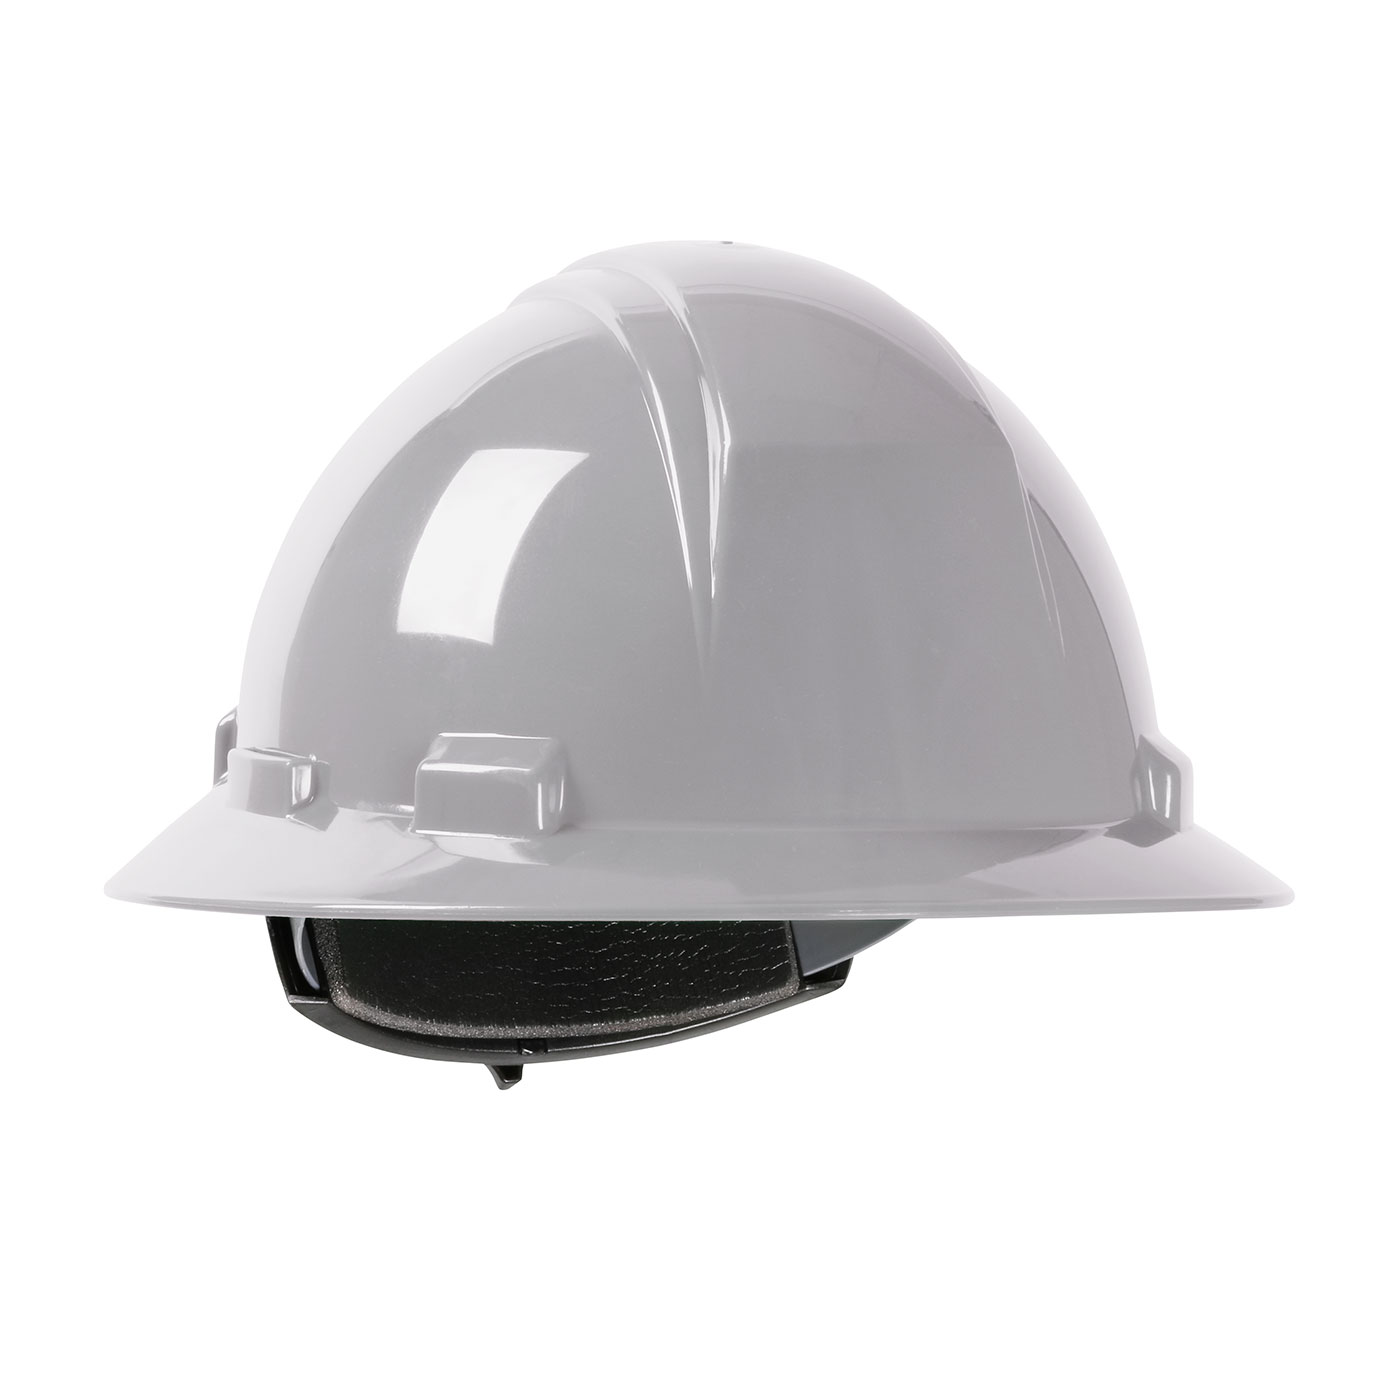 280-HP261R PIP® Dynamic Kilimanjaro™ Full Brim Hard Hat with HDPE Shell, 4-Point Textile Suspension and Wheel Ratchet Adjustment  - Gray